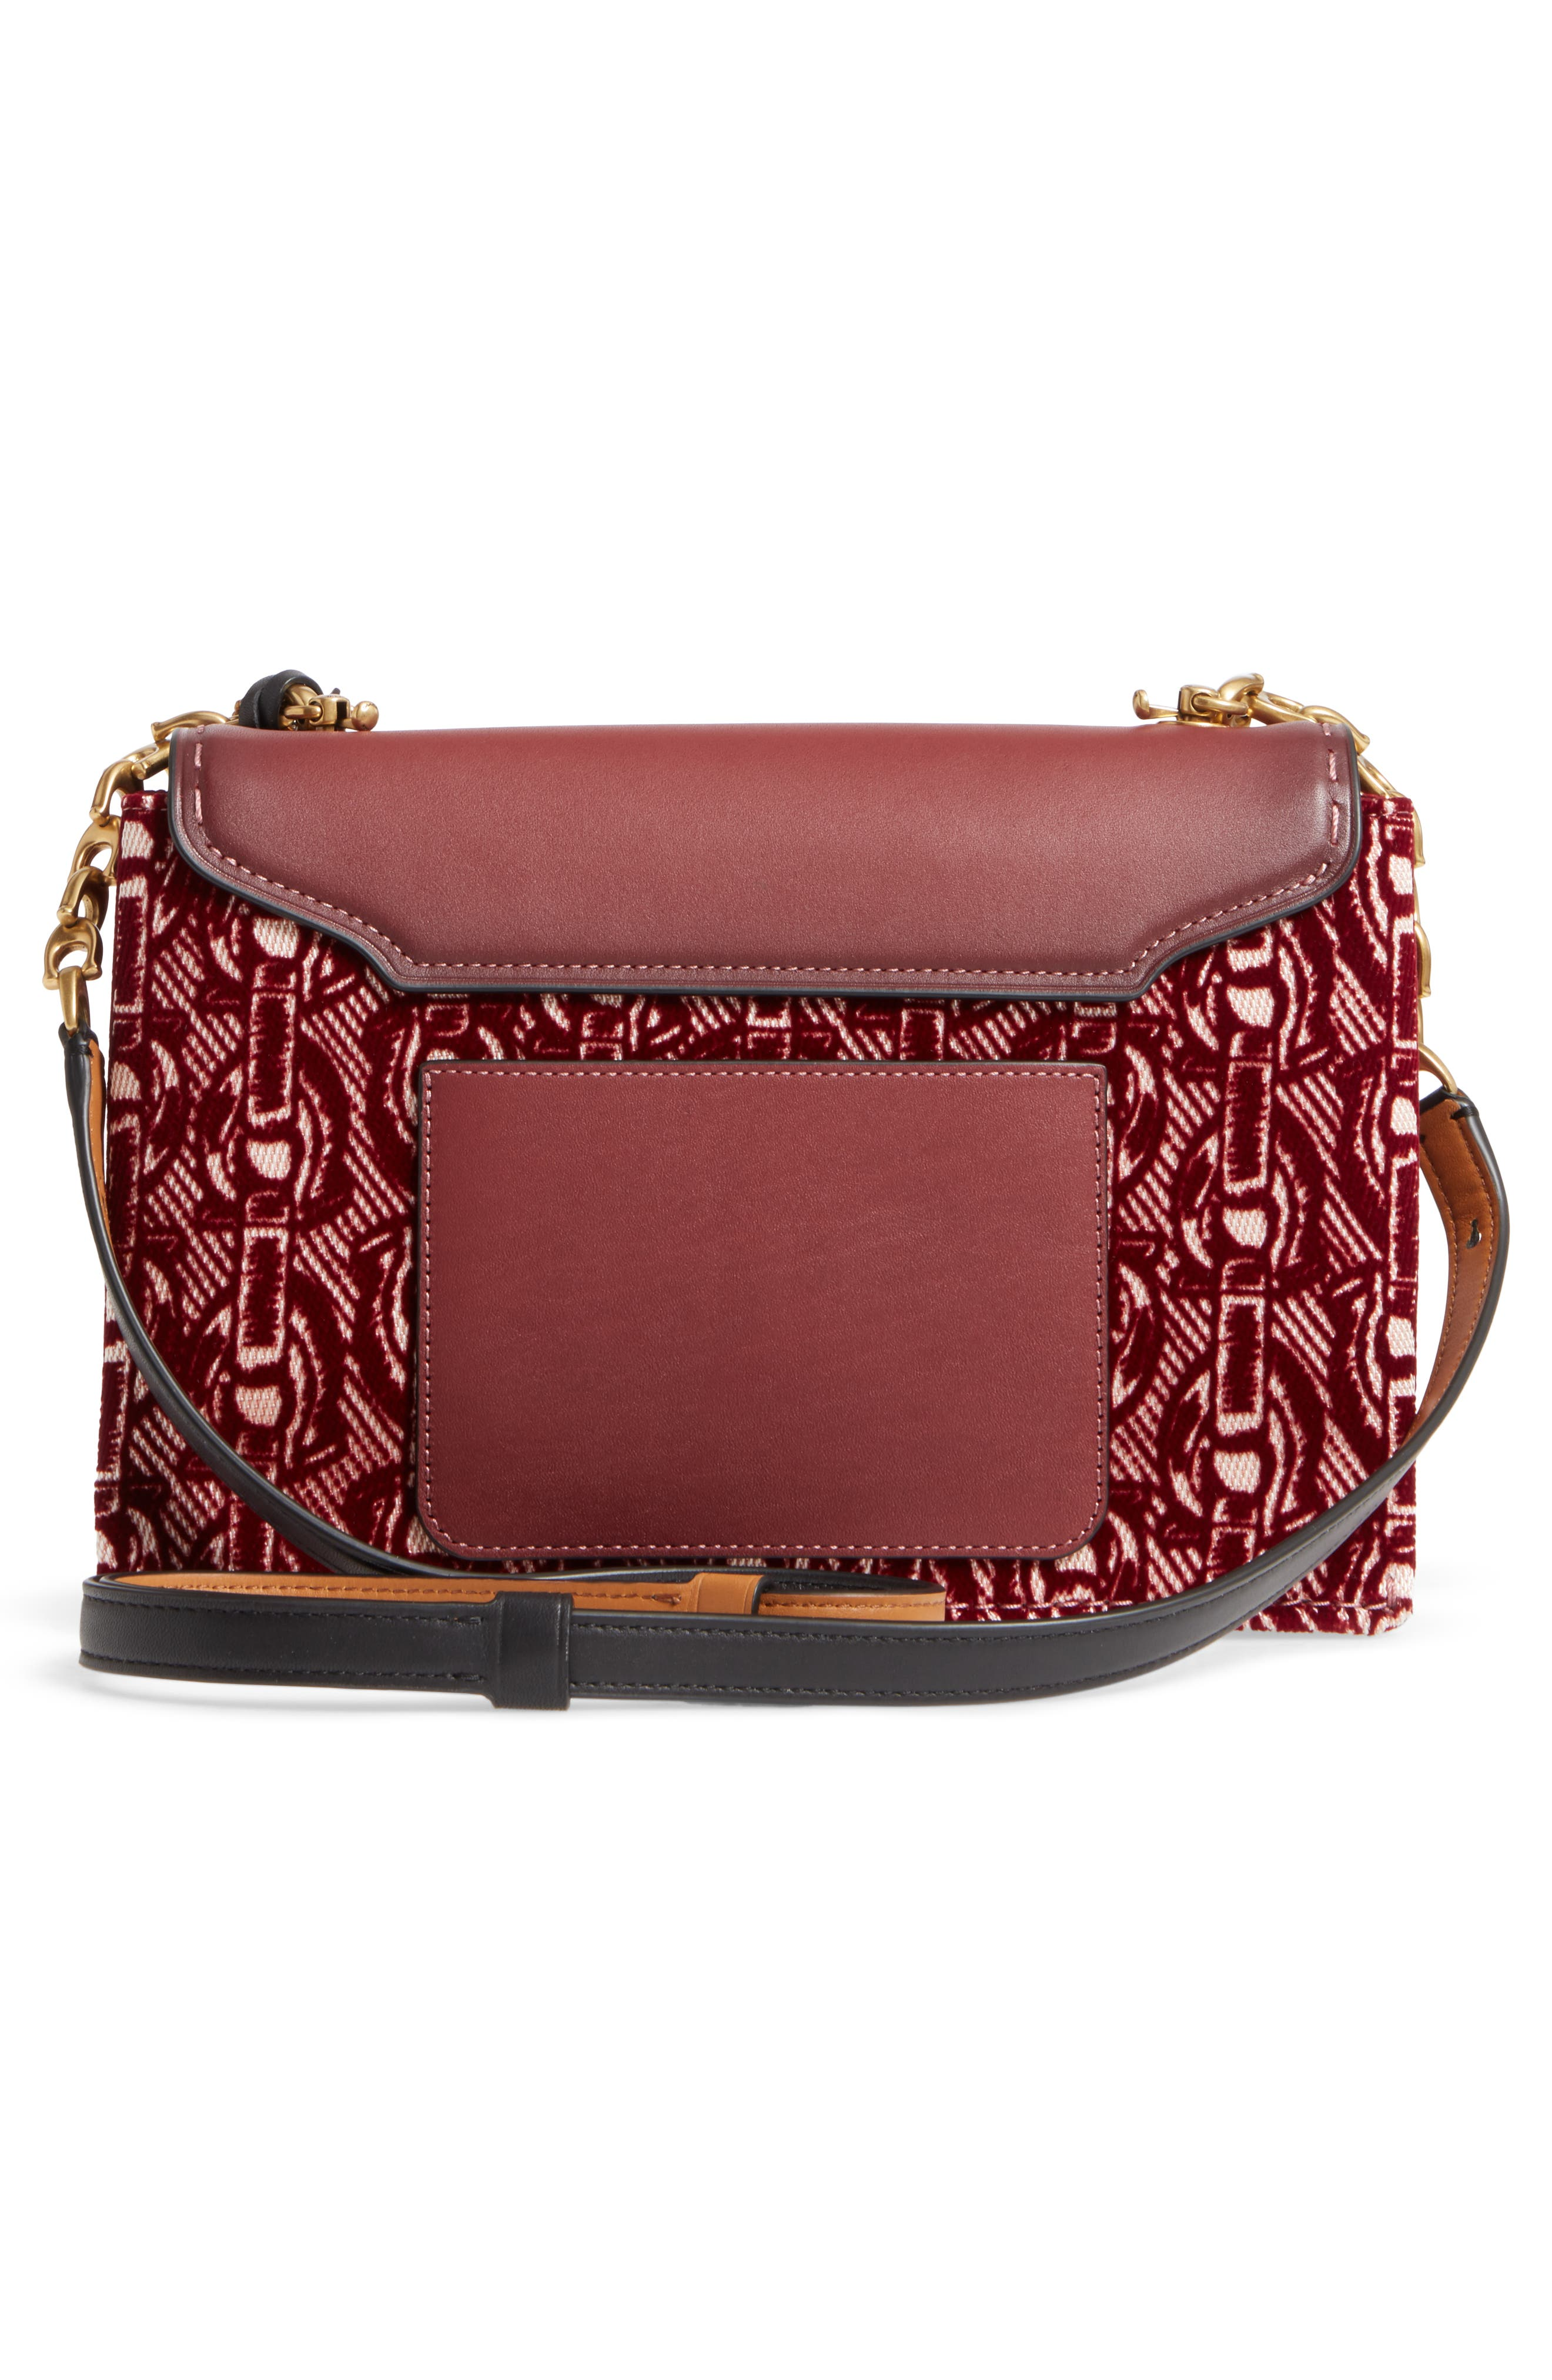 Swagger Chain Leather Crossbody Bag,                             Alternate thumbnail 3, color,                             930